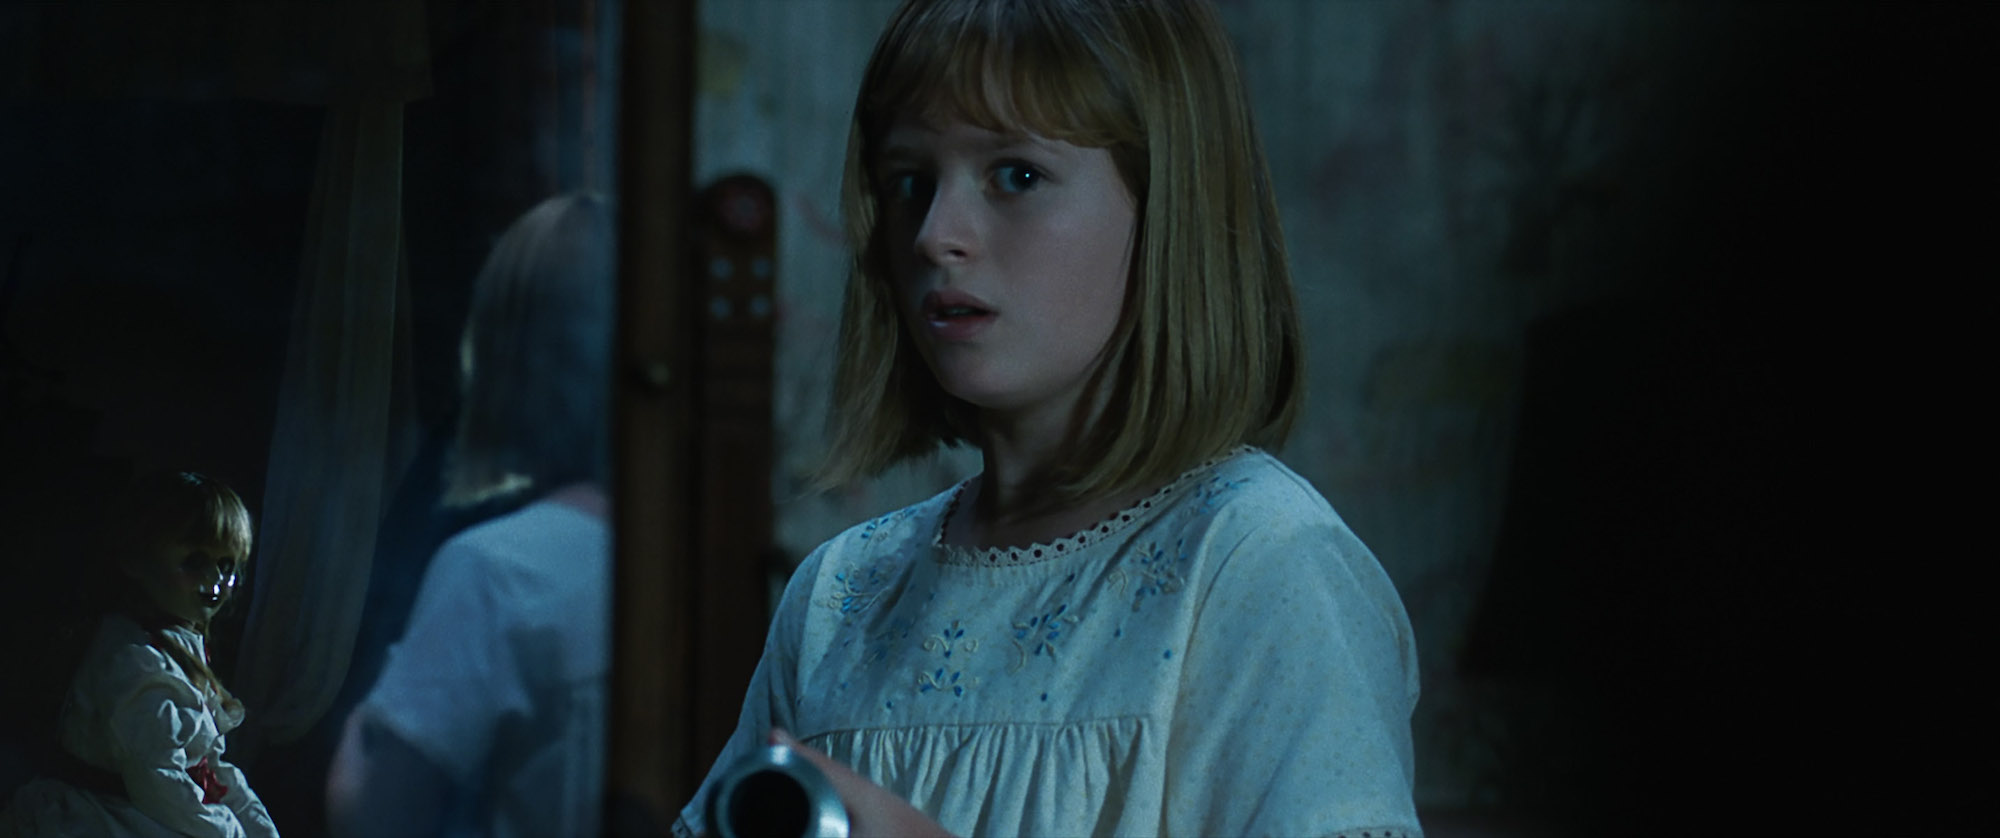 Movie Review 39 Annabelle Creation 39 Has So Much Tension